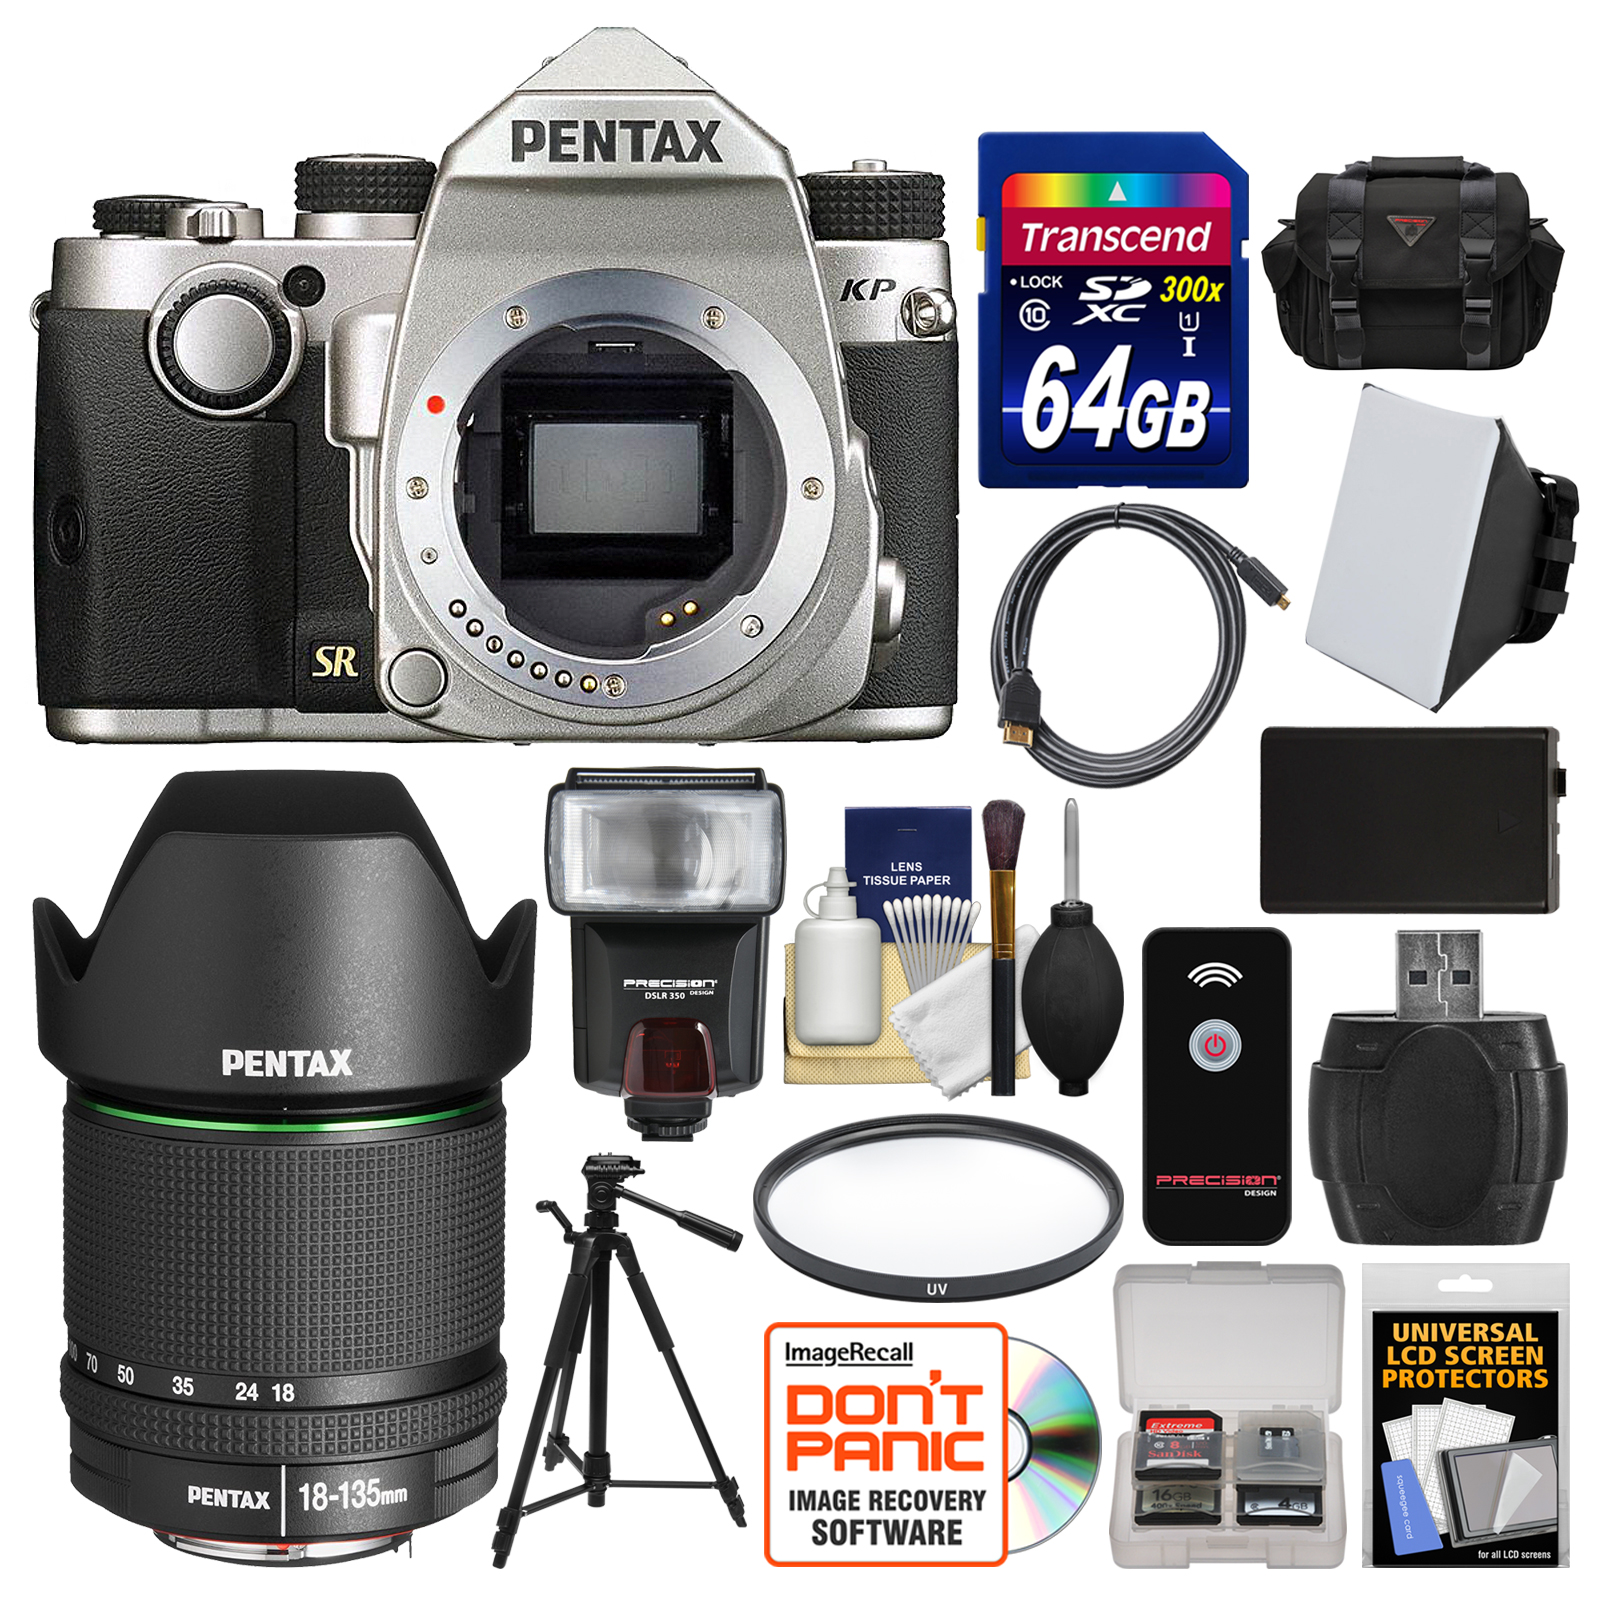 Pentax KP Wi-Fi Digital SLR Camera Body (Silver) with 18-135mm Lens + 64GB Card + Case + Flash + Battery +... by Pentax